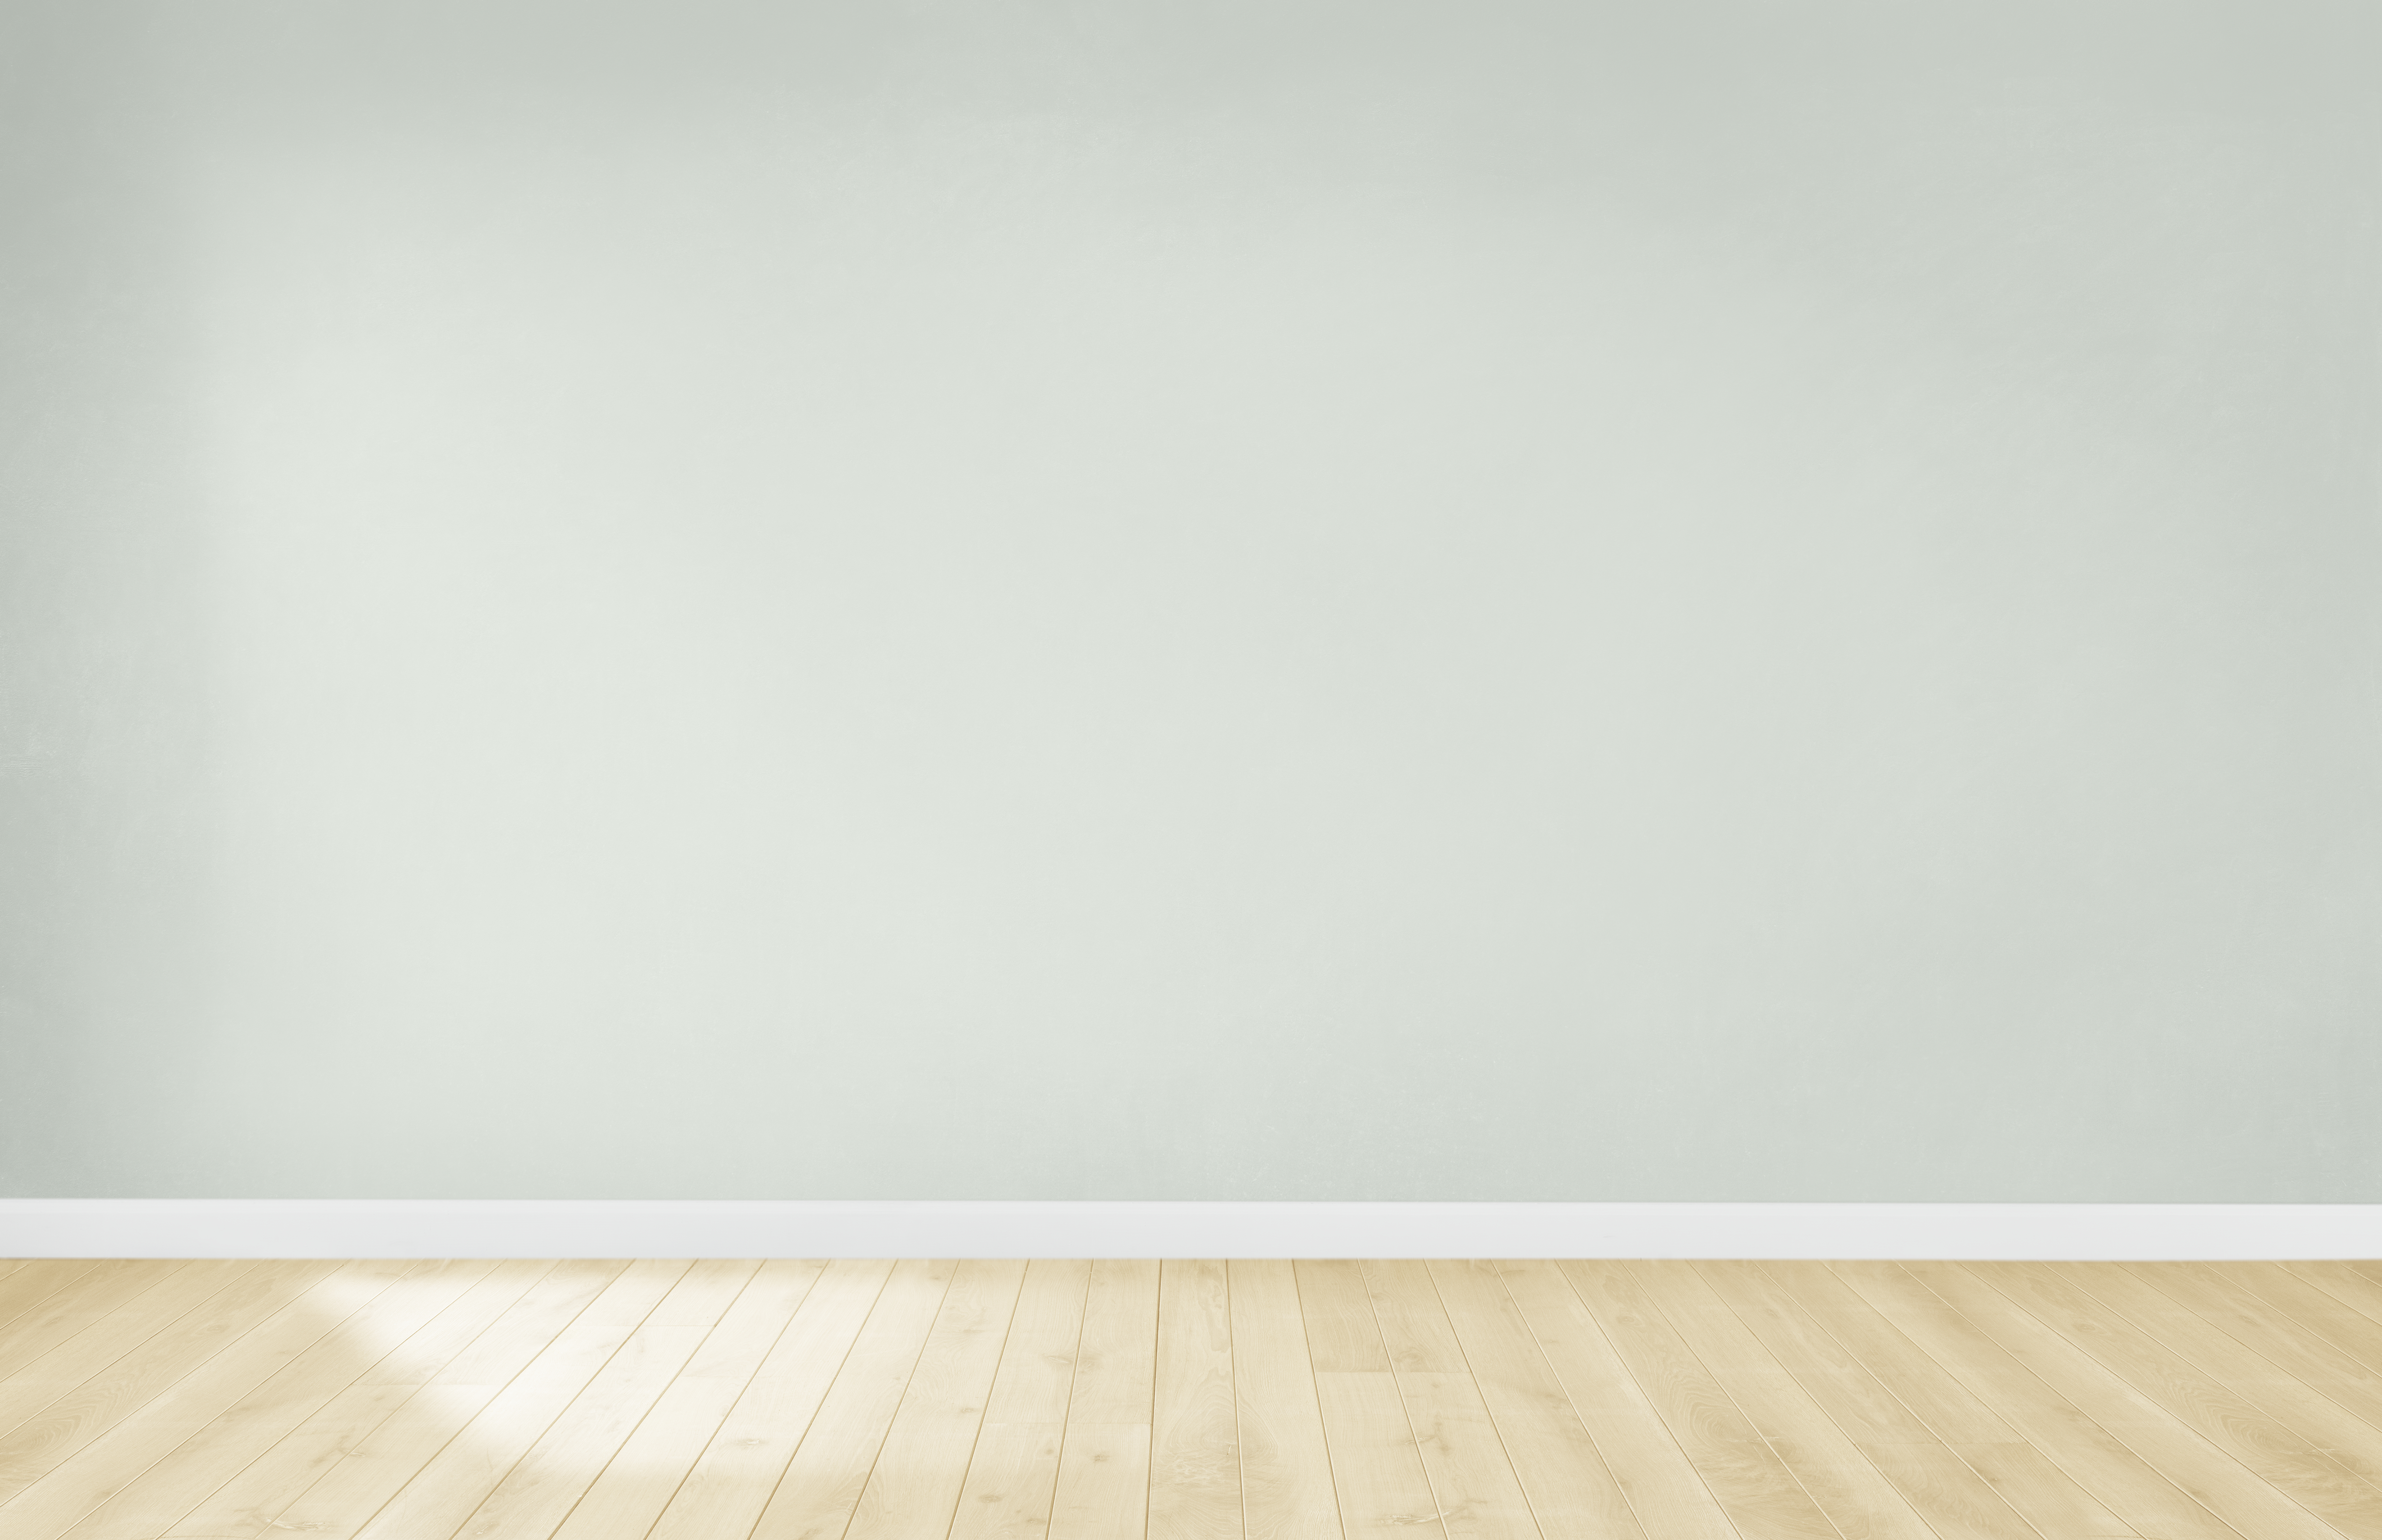 How To Remove Old Wax From Floors Without Chemicals Home Guides